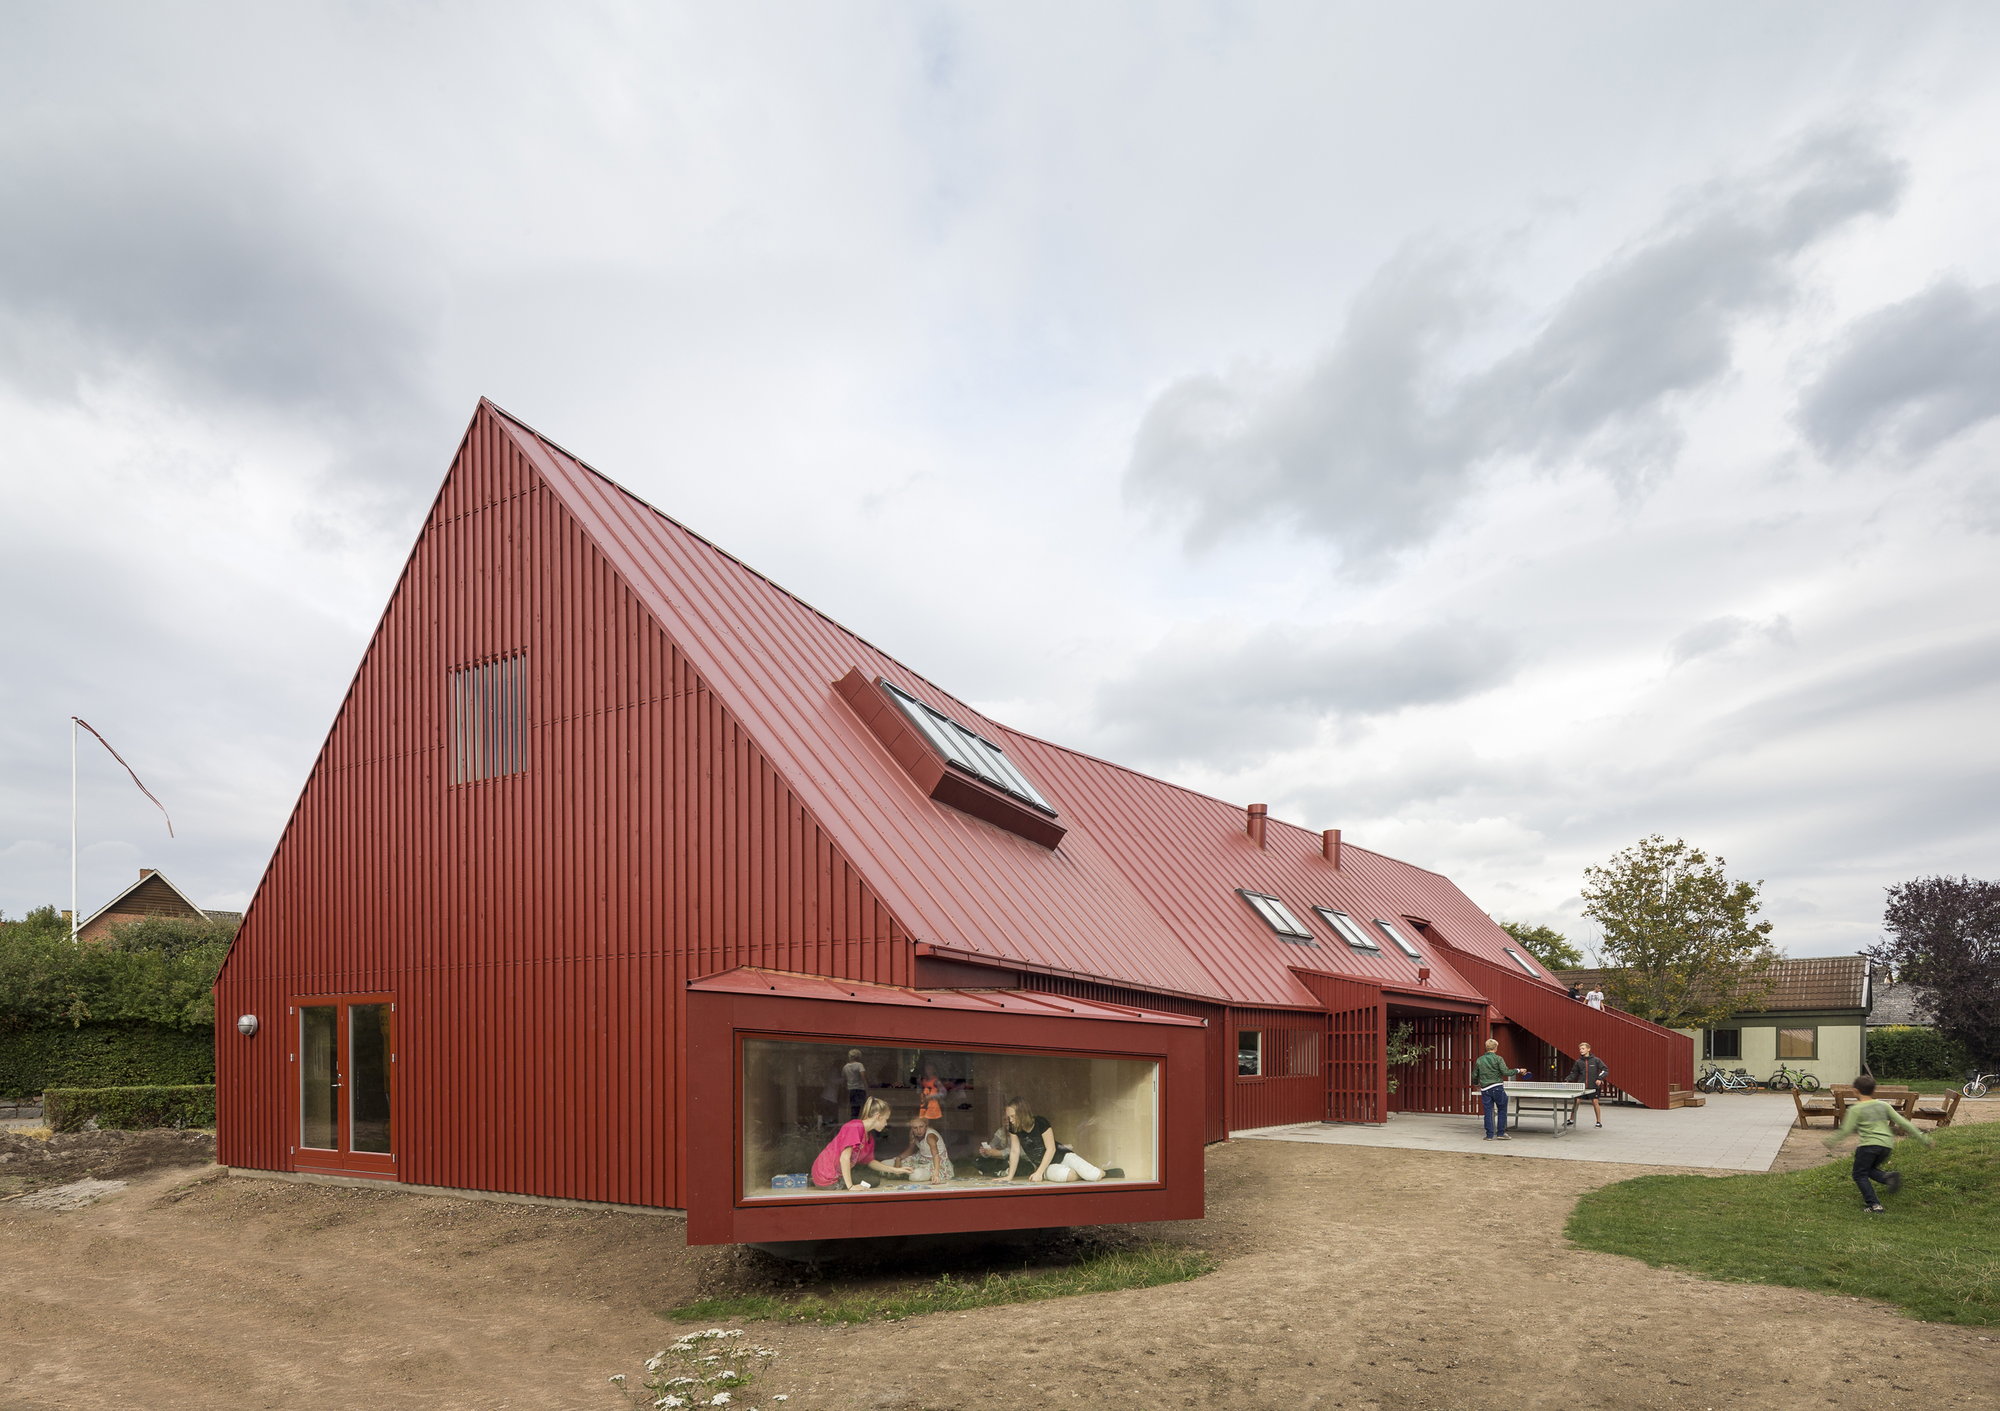 Youth Centre in Roskilde / Cornelius + Vöge, © Adam Mørk